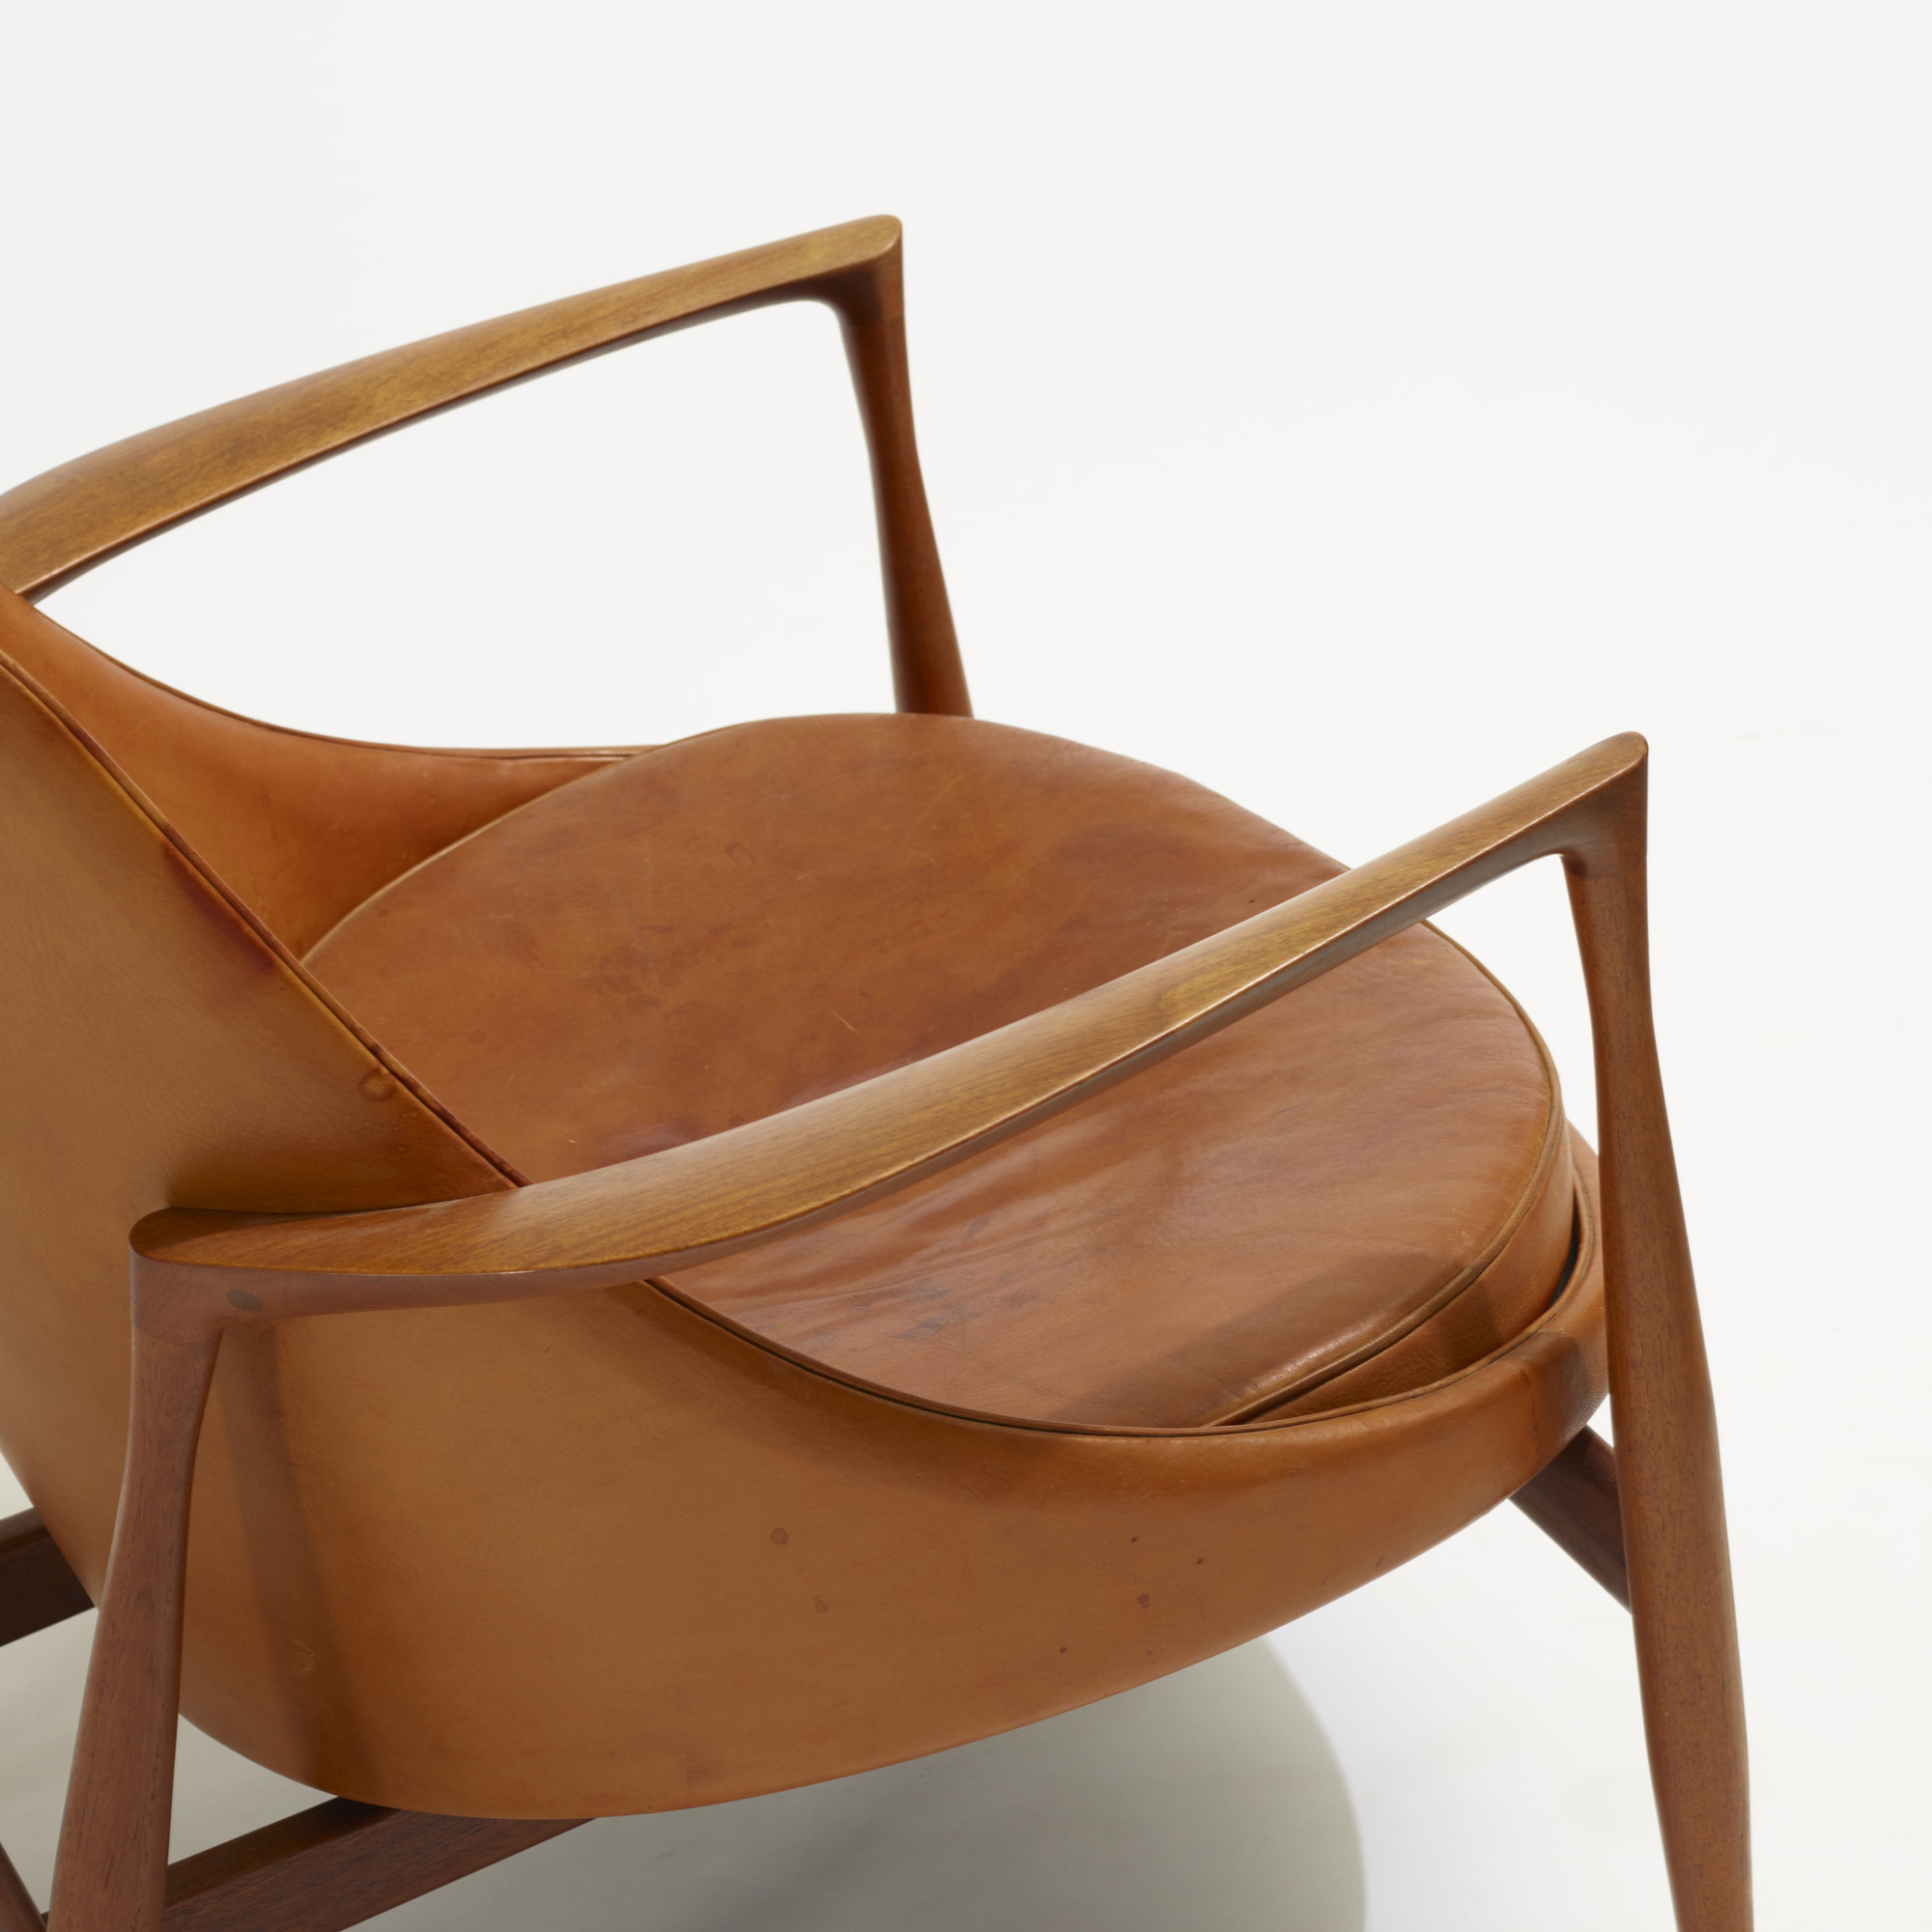 283: Ib Kofod-Larsen / Elizabeth chair (3 of 3)